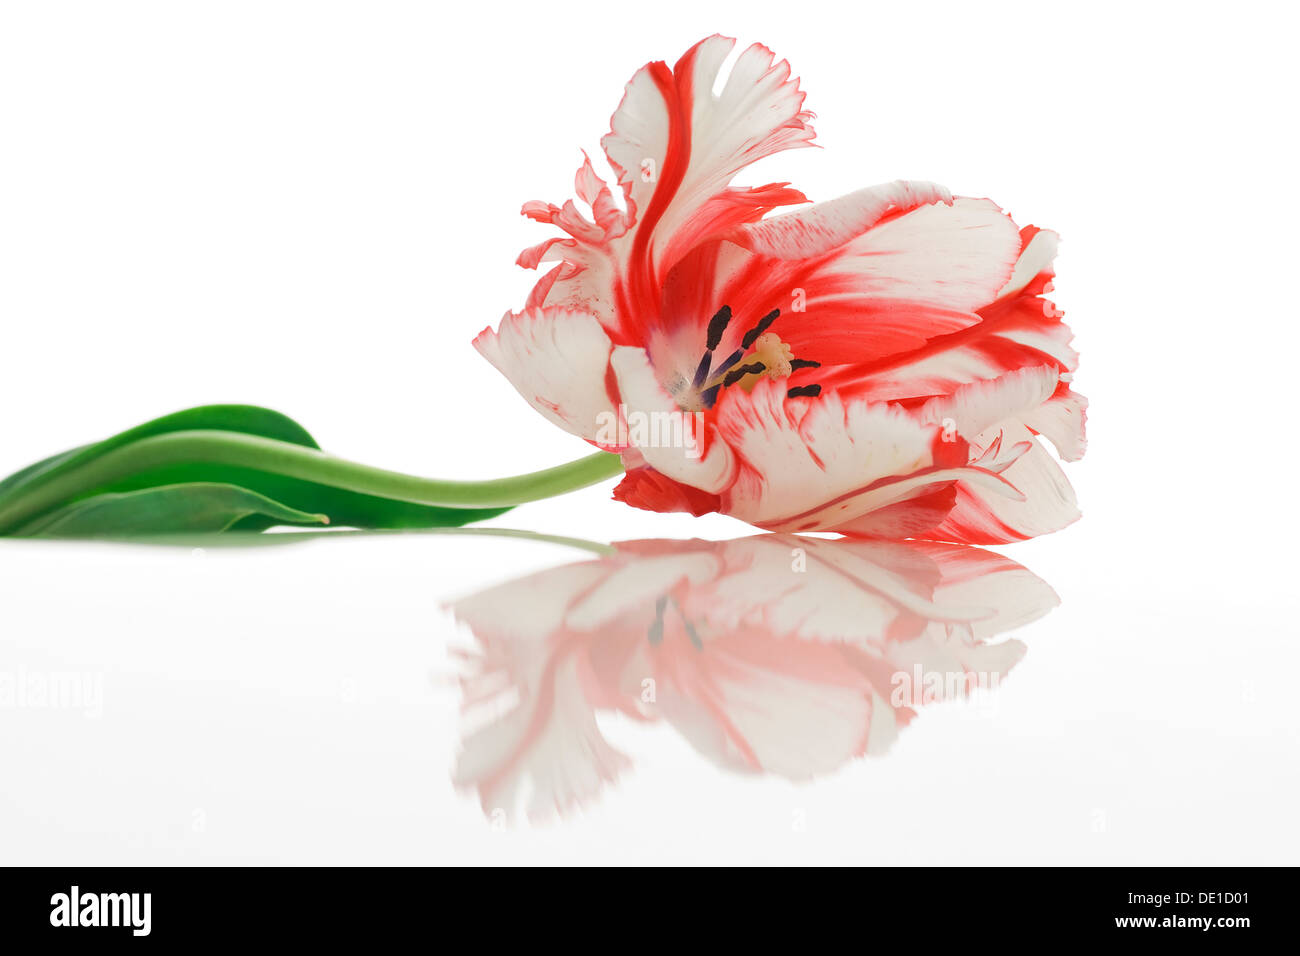 Varicolored tulip flower with reflection - Stock Image